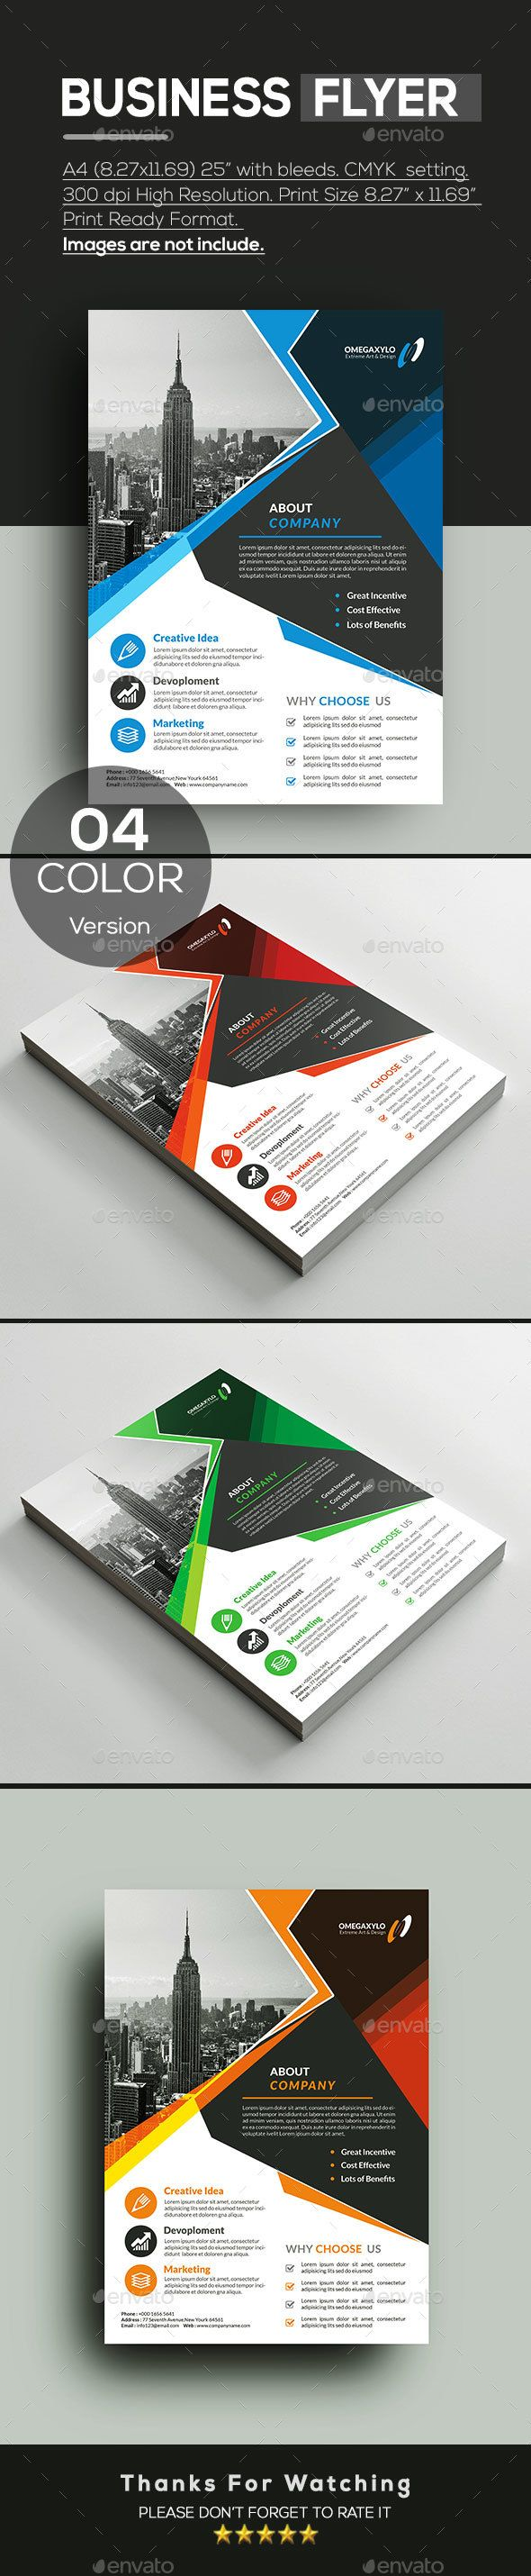 business flyer print templates flyers corporate to make this pin